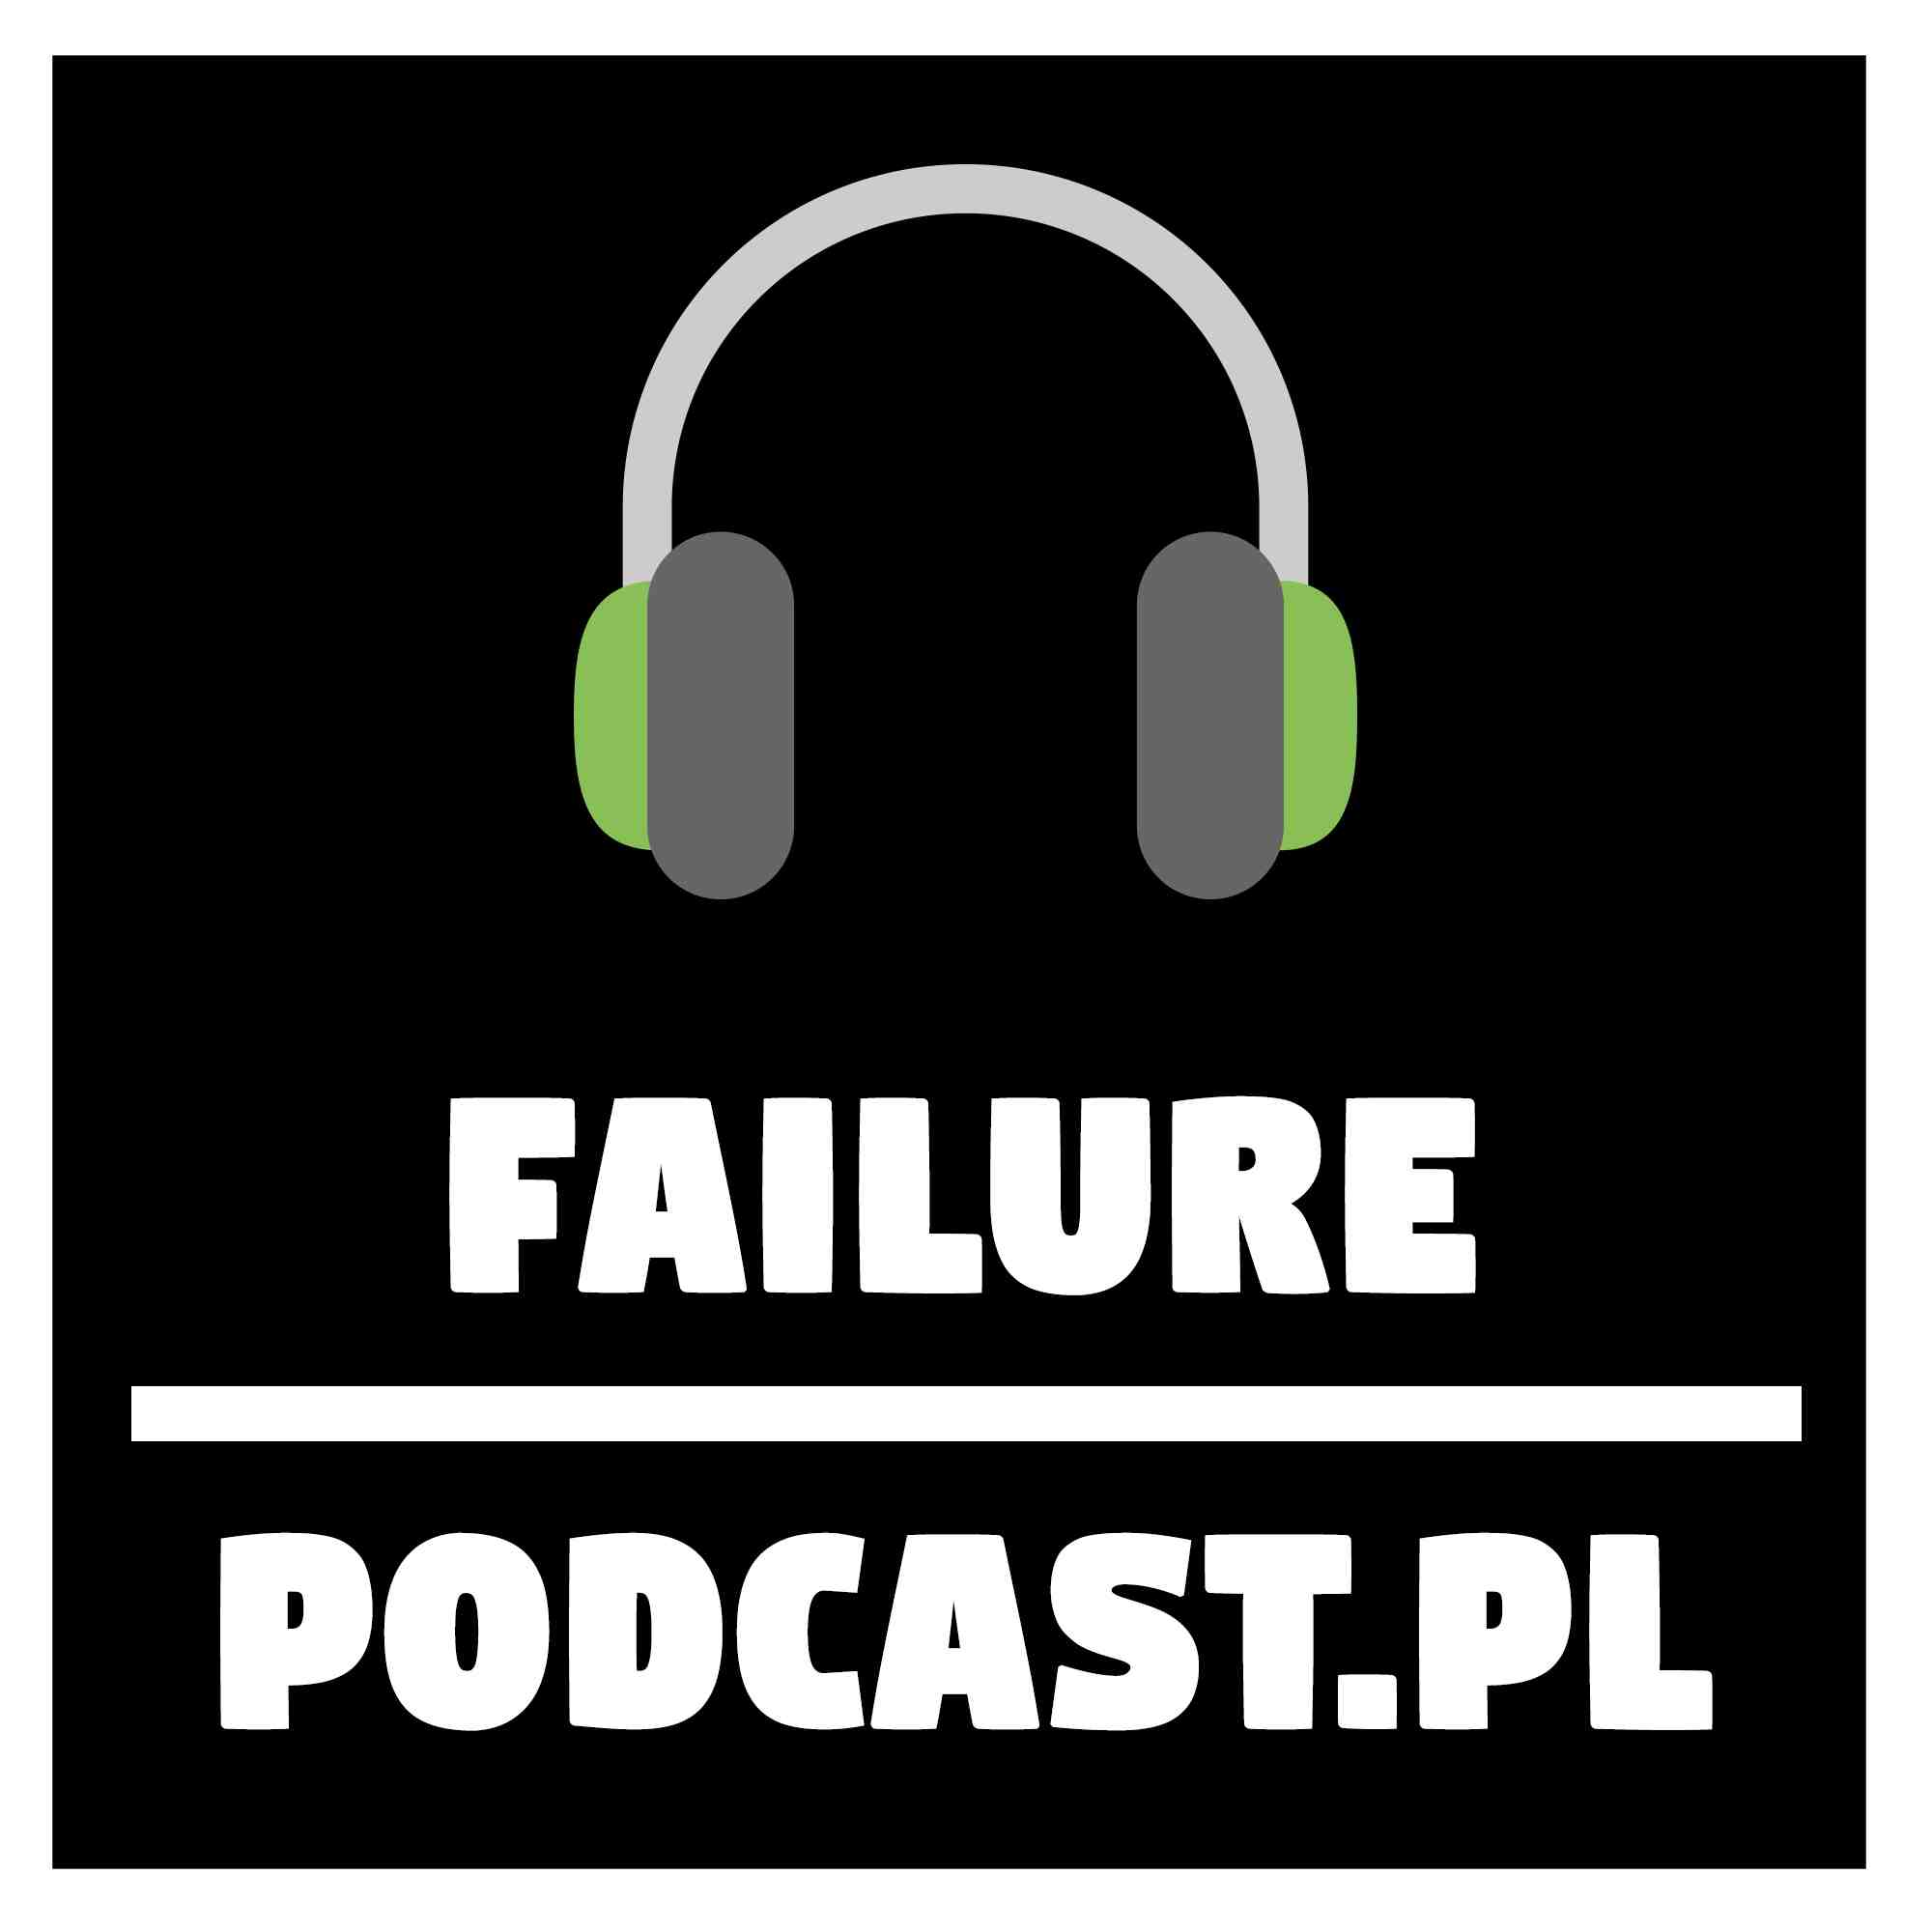 FailurePodcast.pl - logo